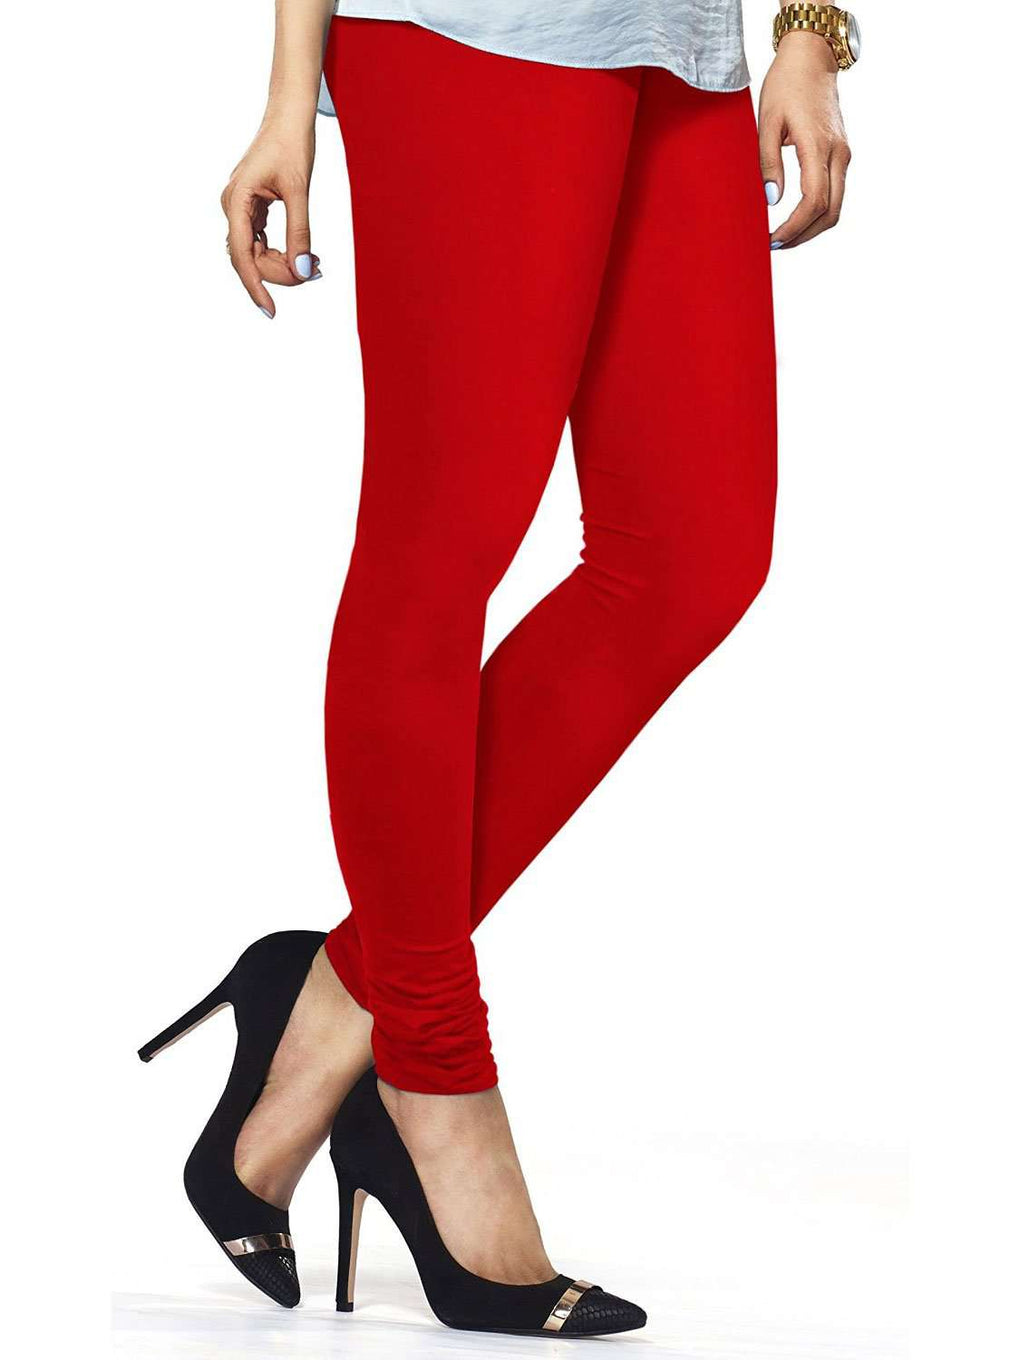 Cotton Lycra Churidar Free Size Red Leggings